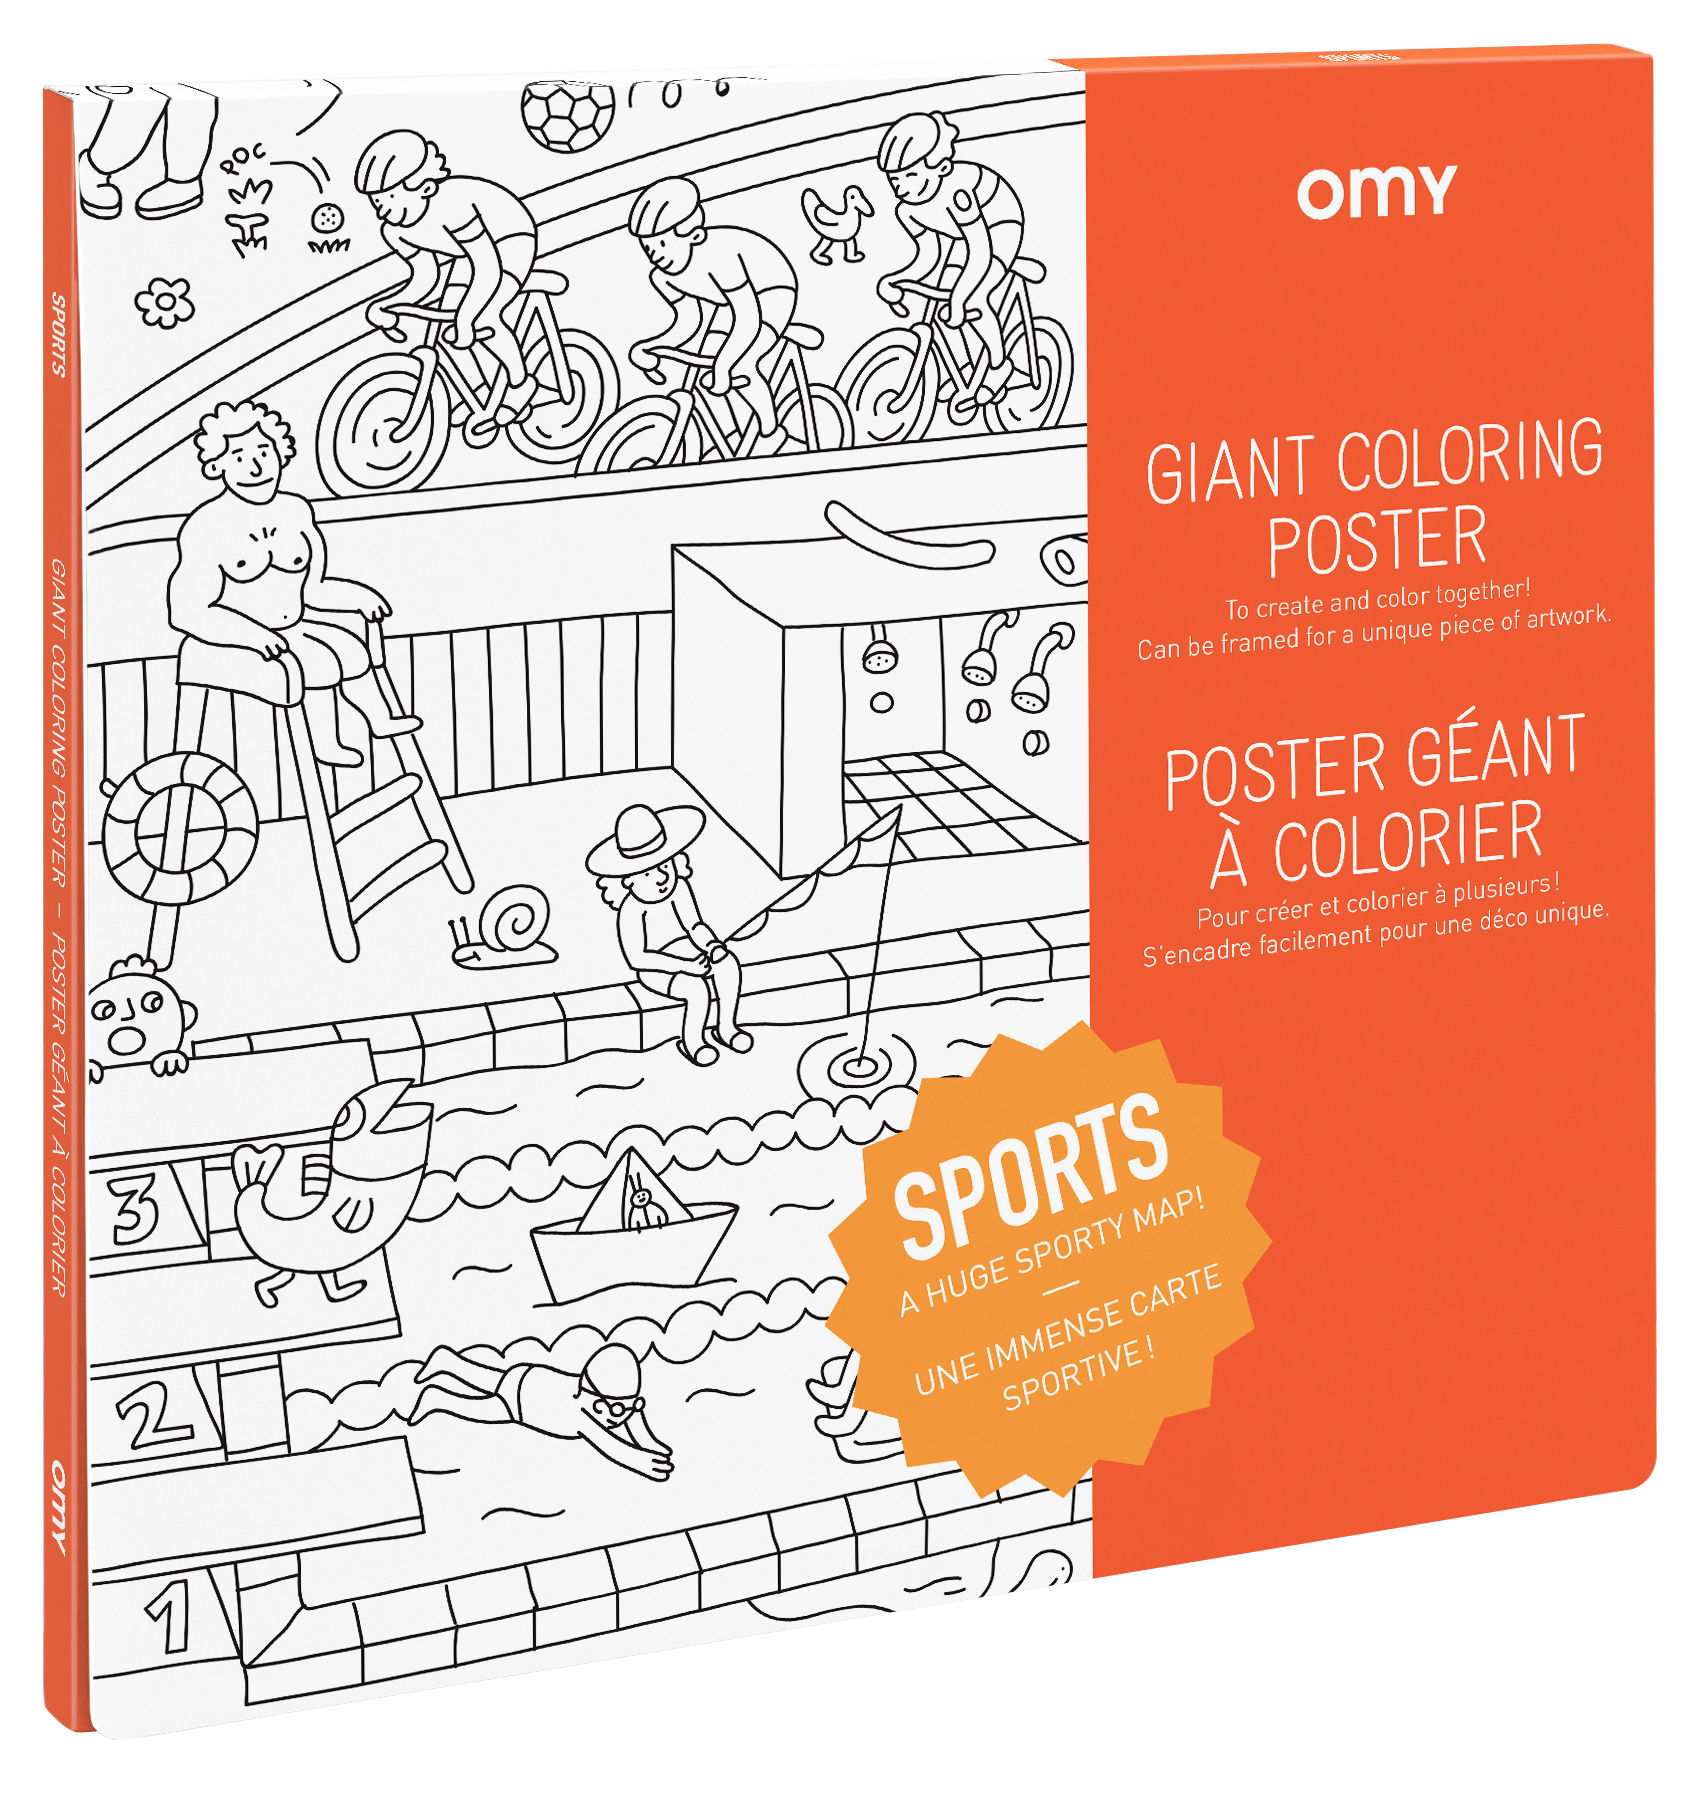 Decoration - Children's Home Accessories - Sport Colouring poster - / 100 x 70 cm by OMY Design & Play - Sport - Papier recyclé